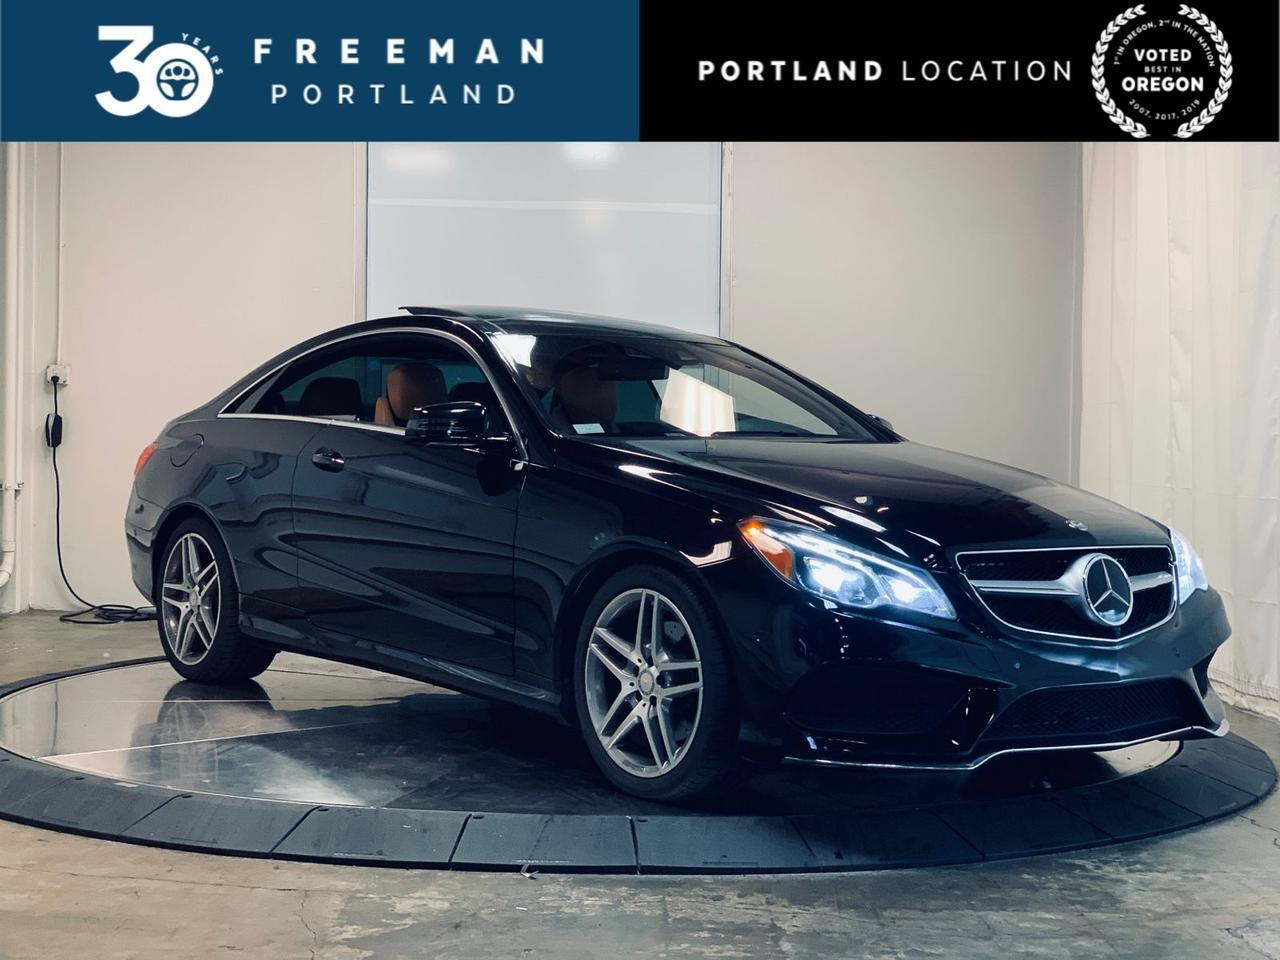 2017 Mercedes-Benz E 400 Coupe AMG Sport Pano Distronic+ Surround Camera Portland OR